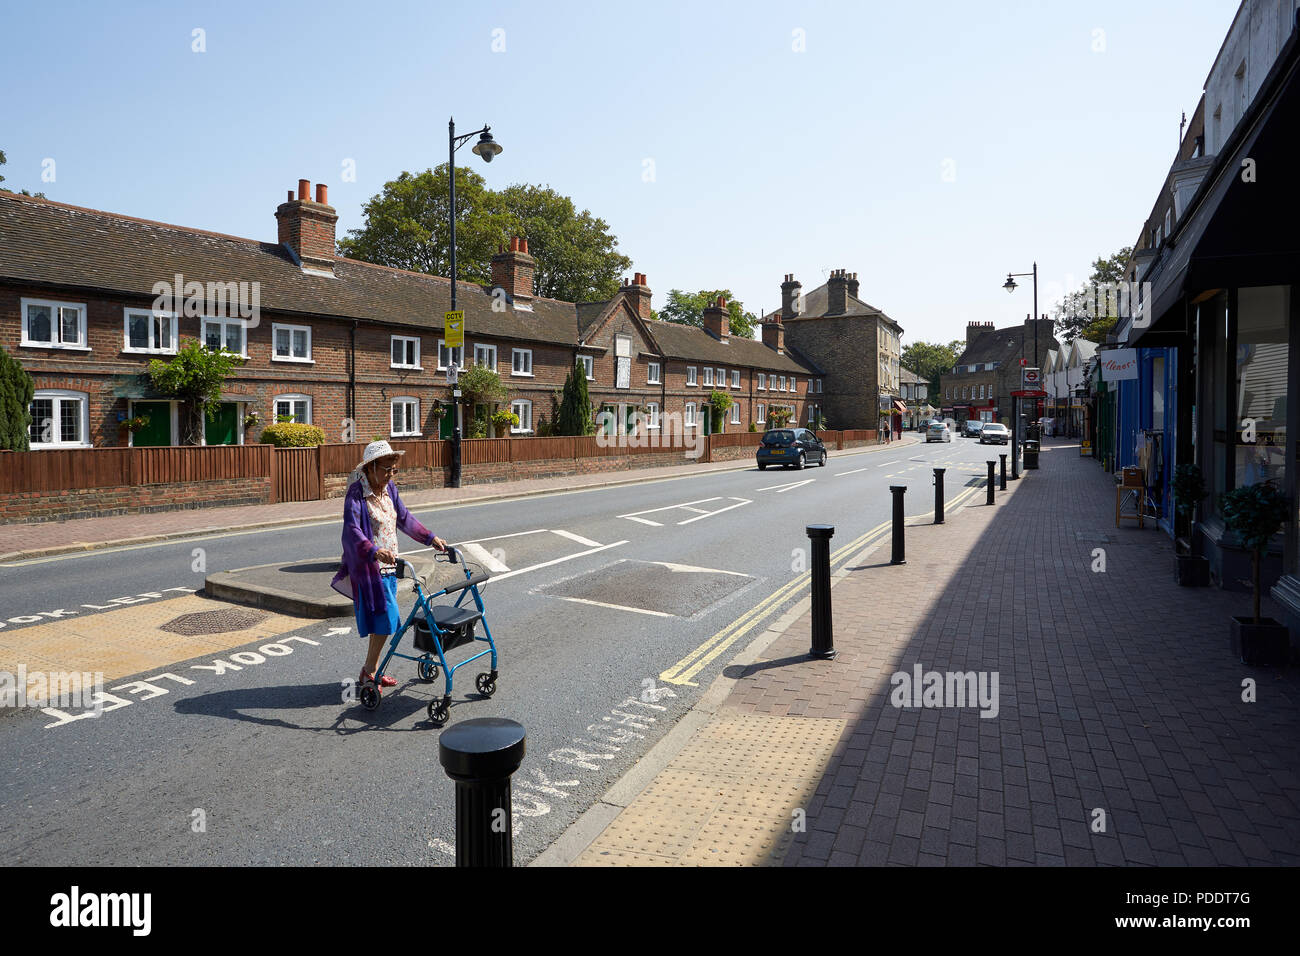 Styleman's Alms Houses, Bexley Stock Photo